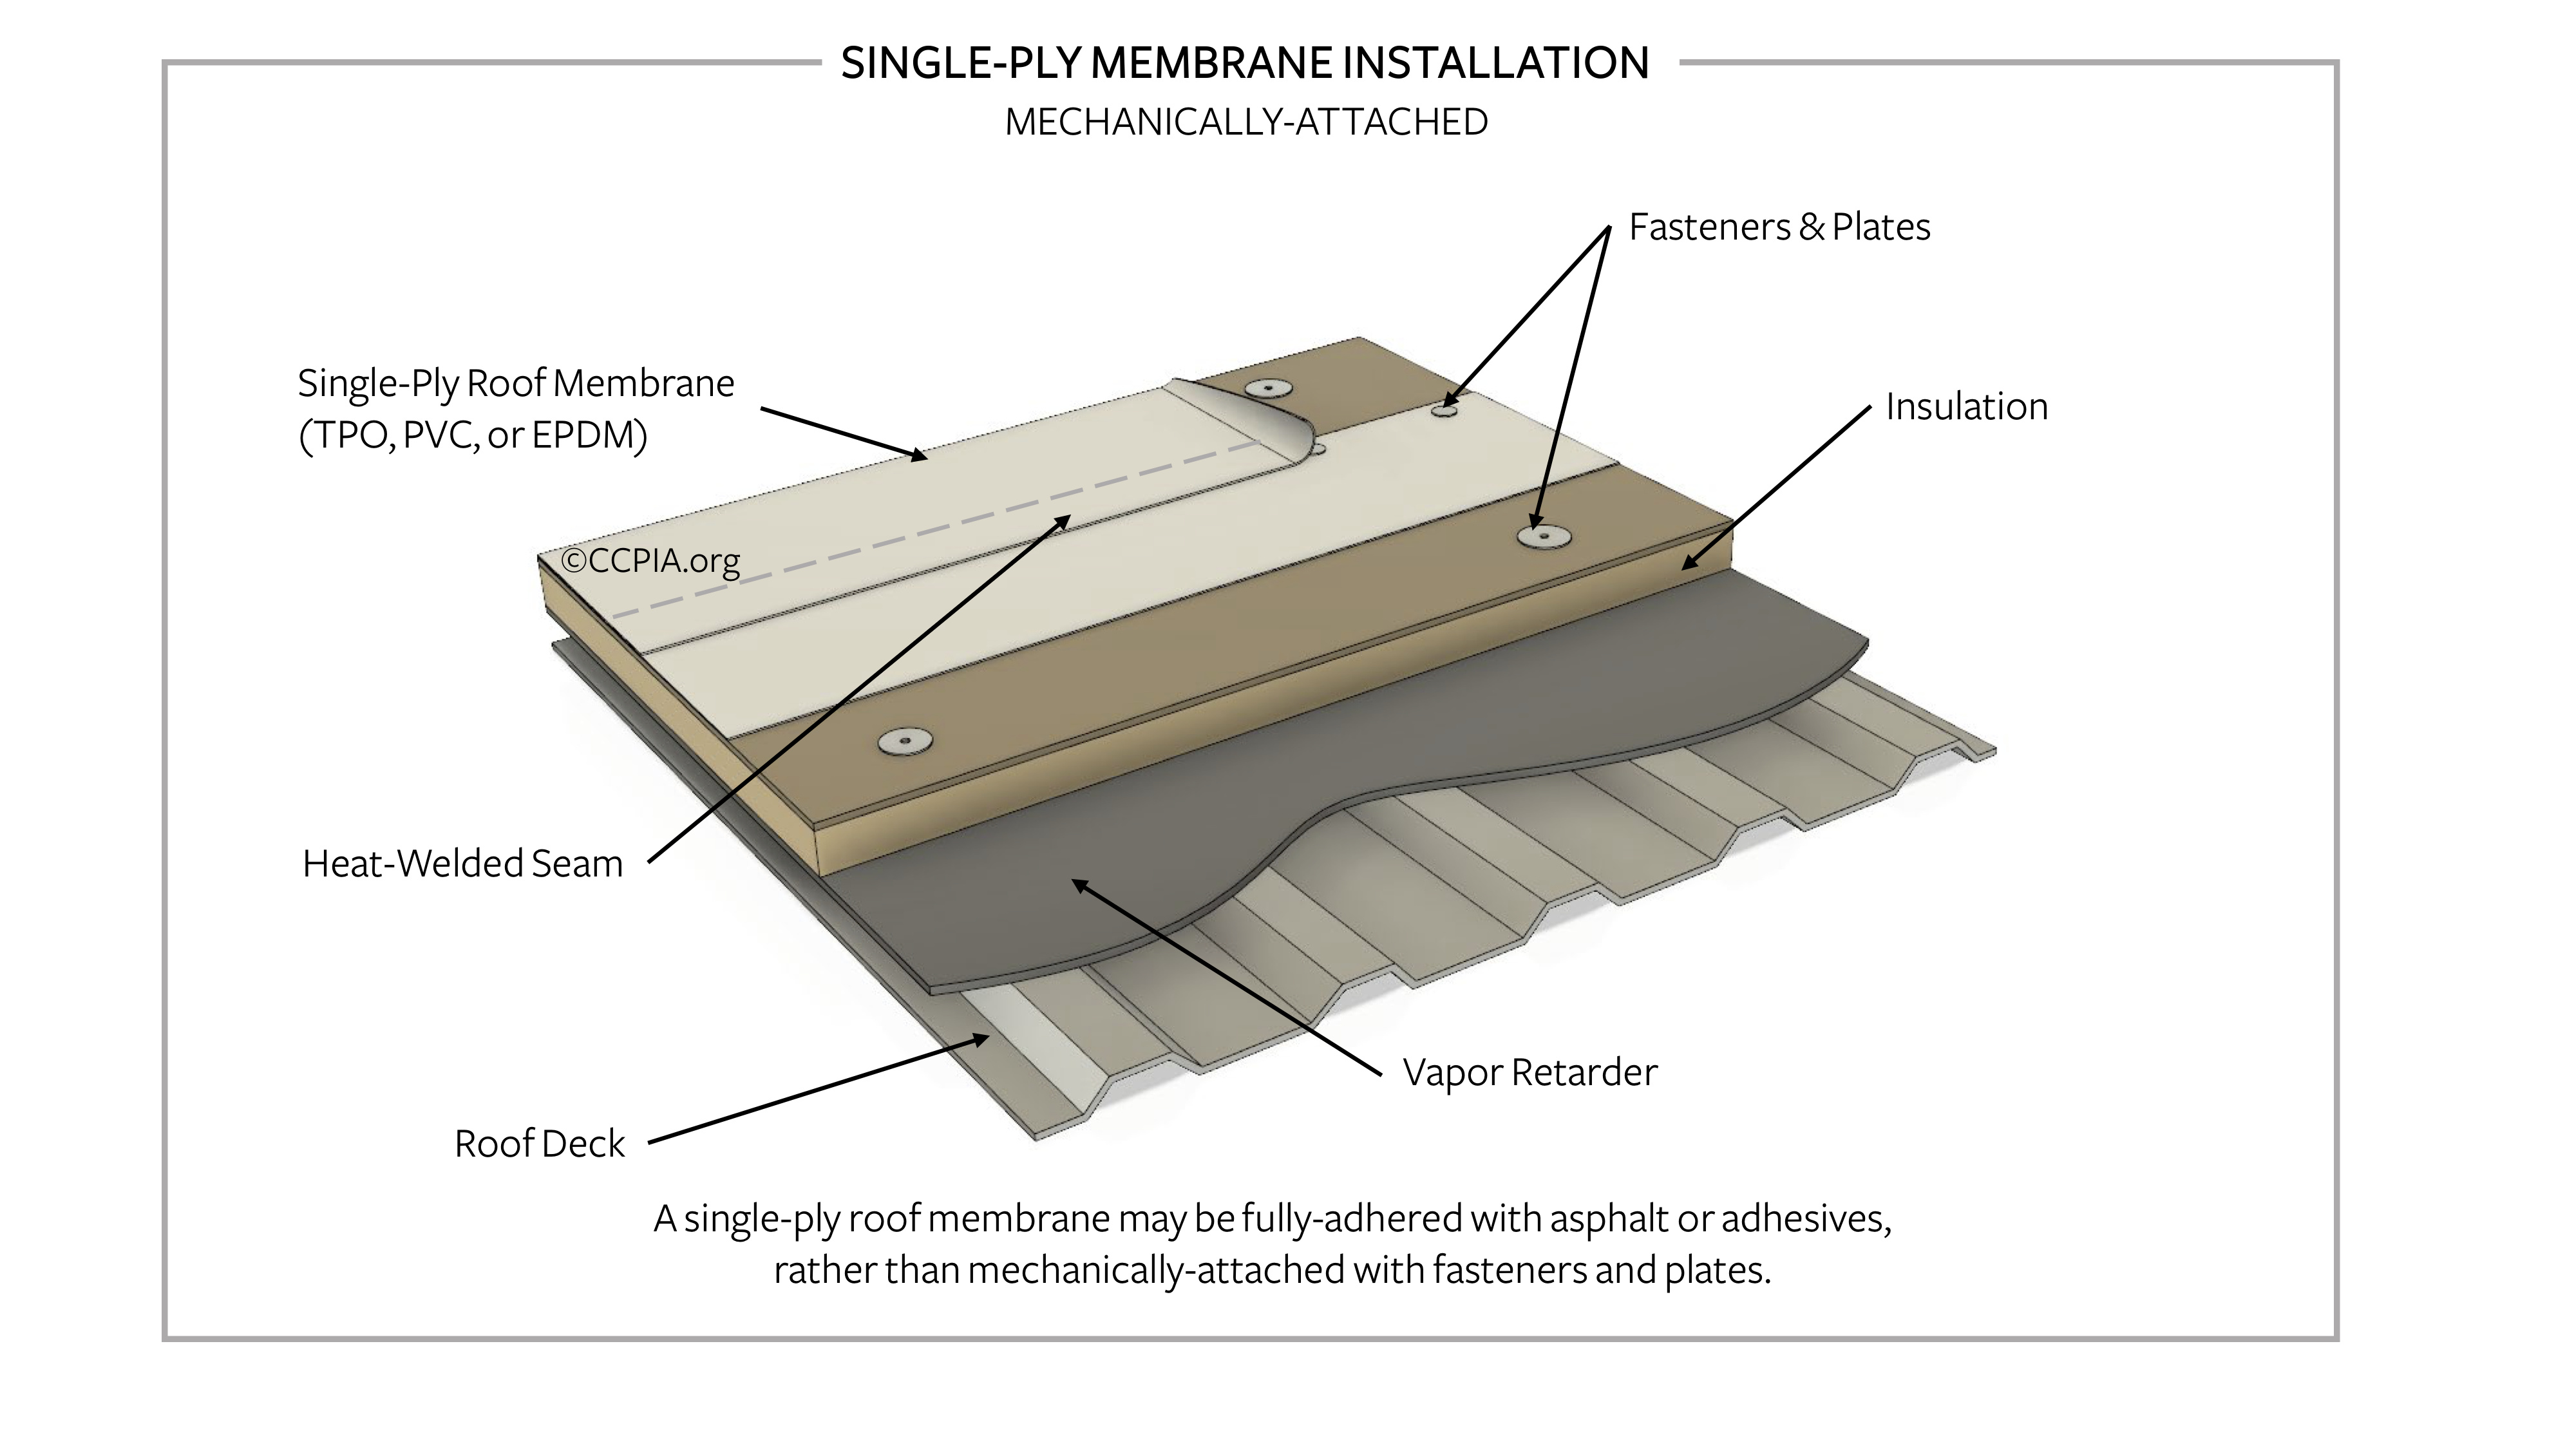 Single-ply membrane installation, mechanically-attached.